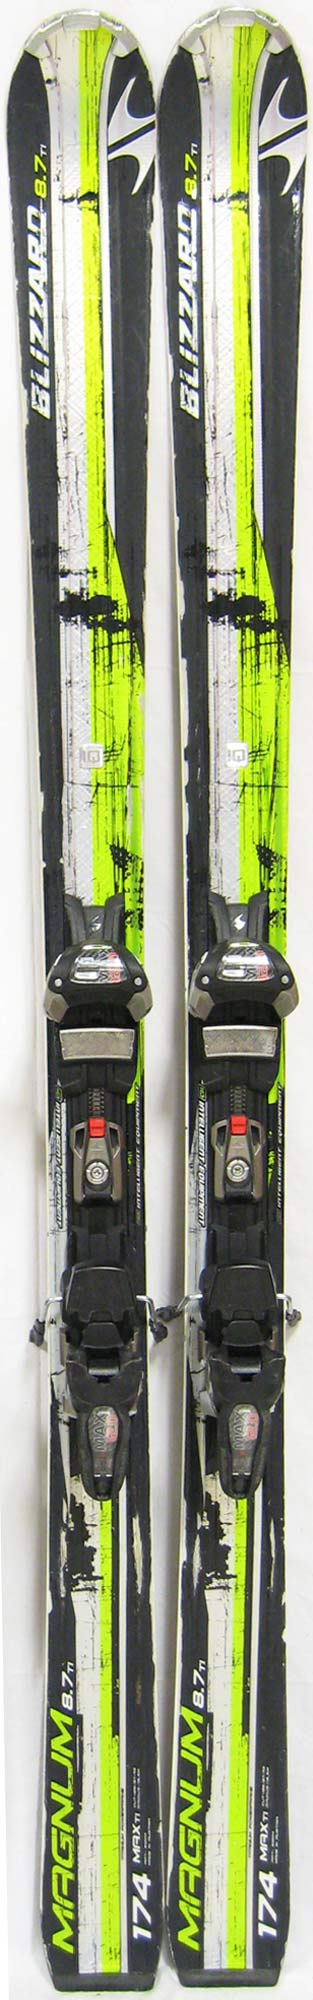 Topsheets of 2012 Blizzard Magnum 8.7 TI IQ Max Skis For Sale